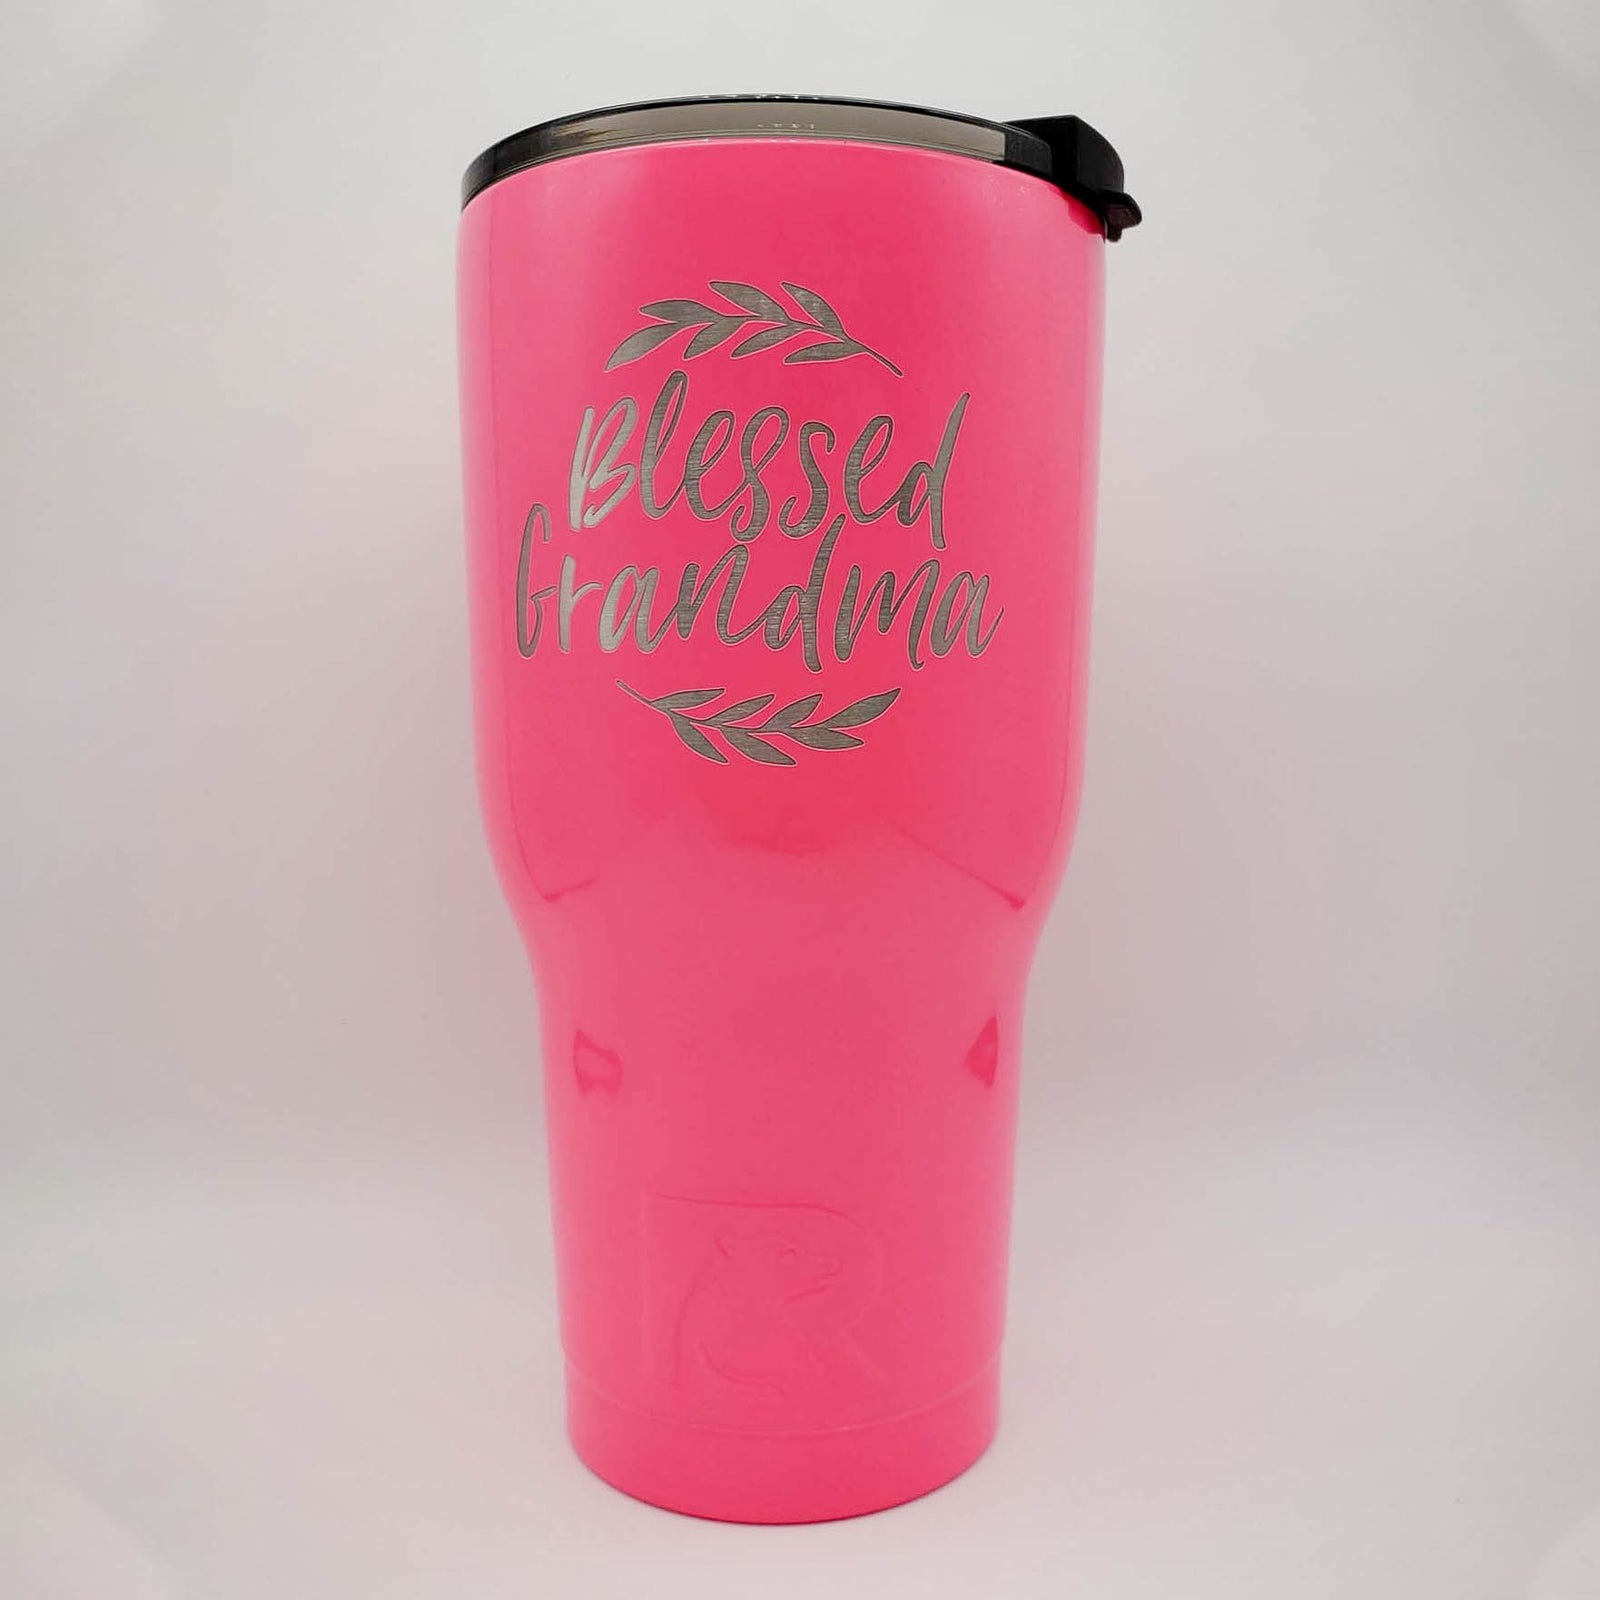 Blessed Grandma Personalized Engraved Rtic Tumbler By Sunny Box This 30oz rtic stainless steel tumbler features a multicam hydrographics finish to set it apart from the rest. blessed grandma personalized engraved